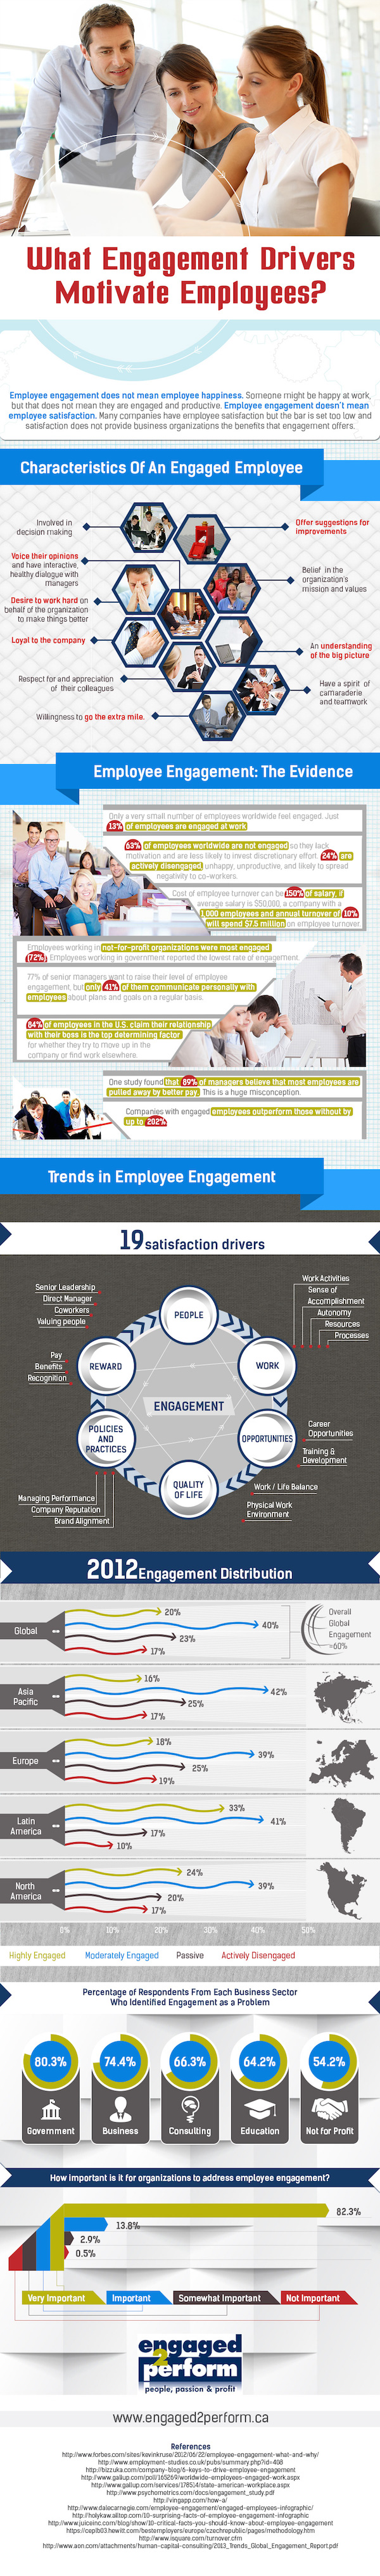 Engagement-Drivers-That- Motivates-Employees